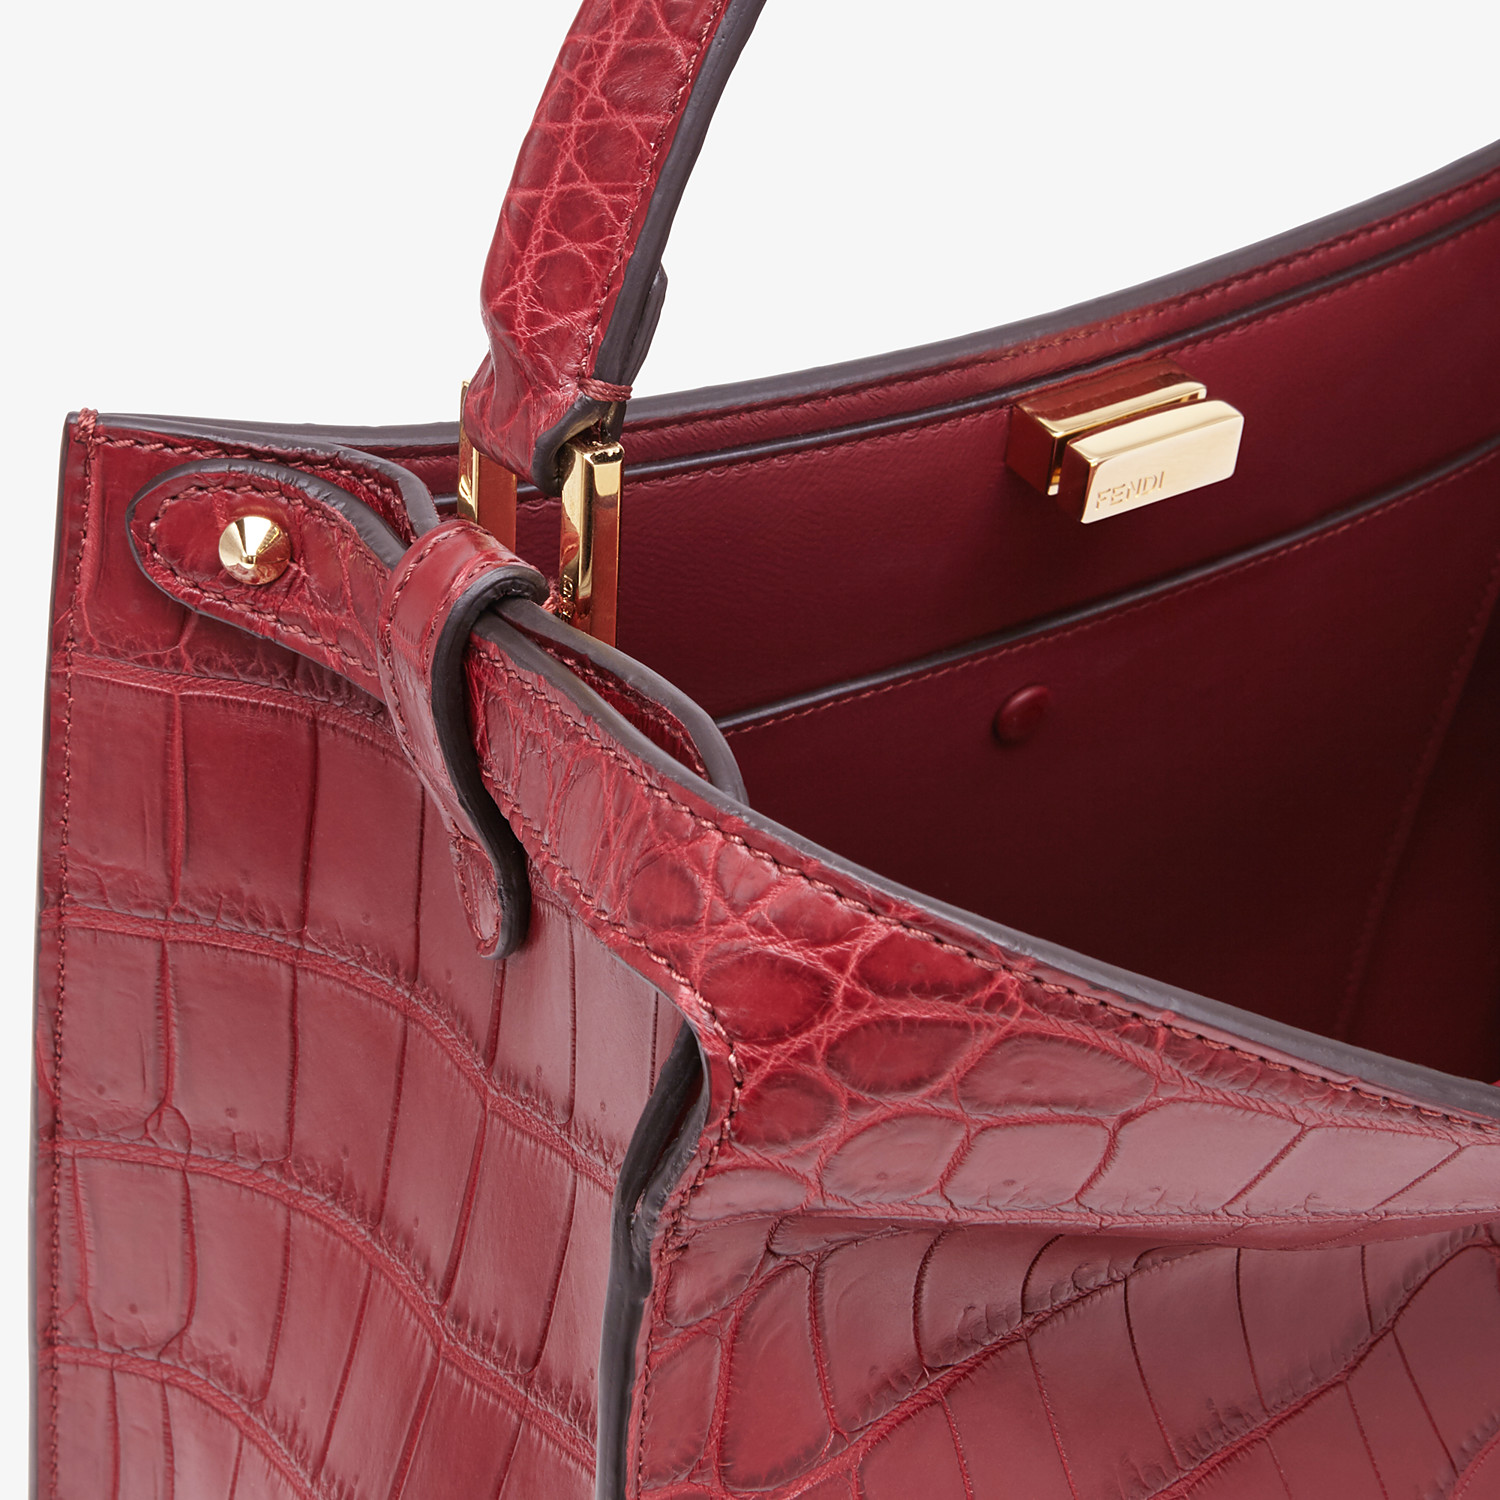 FENDI PEEKABOO X-LITE MEDIUM - Burgundy crocodile leather bag - view 6 detail